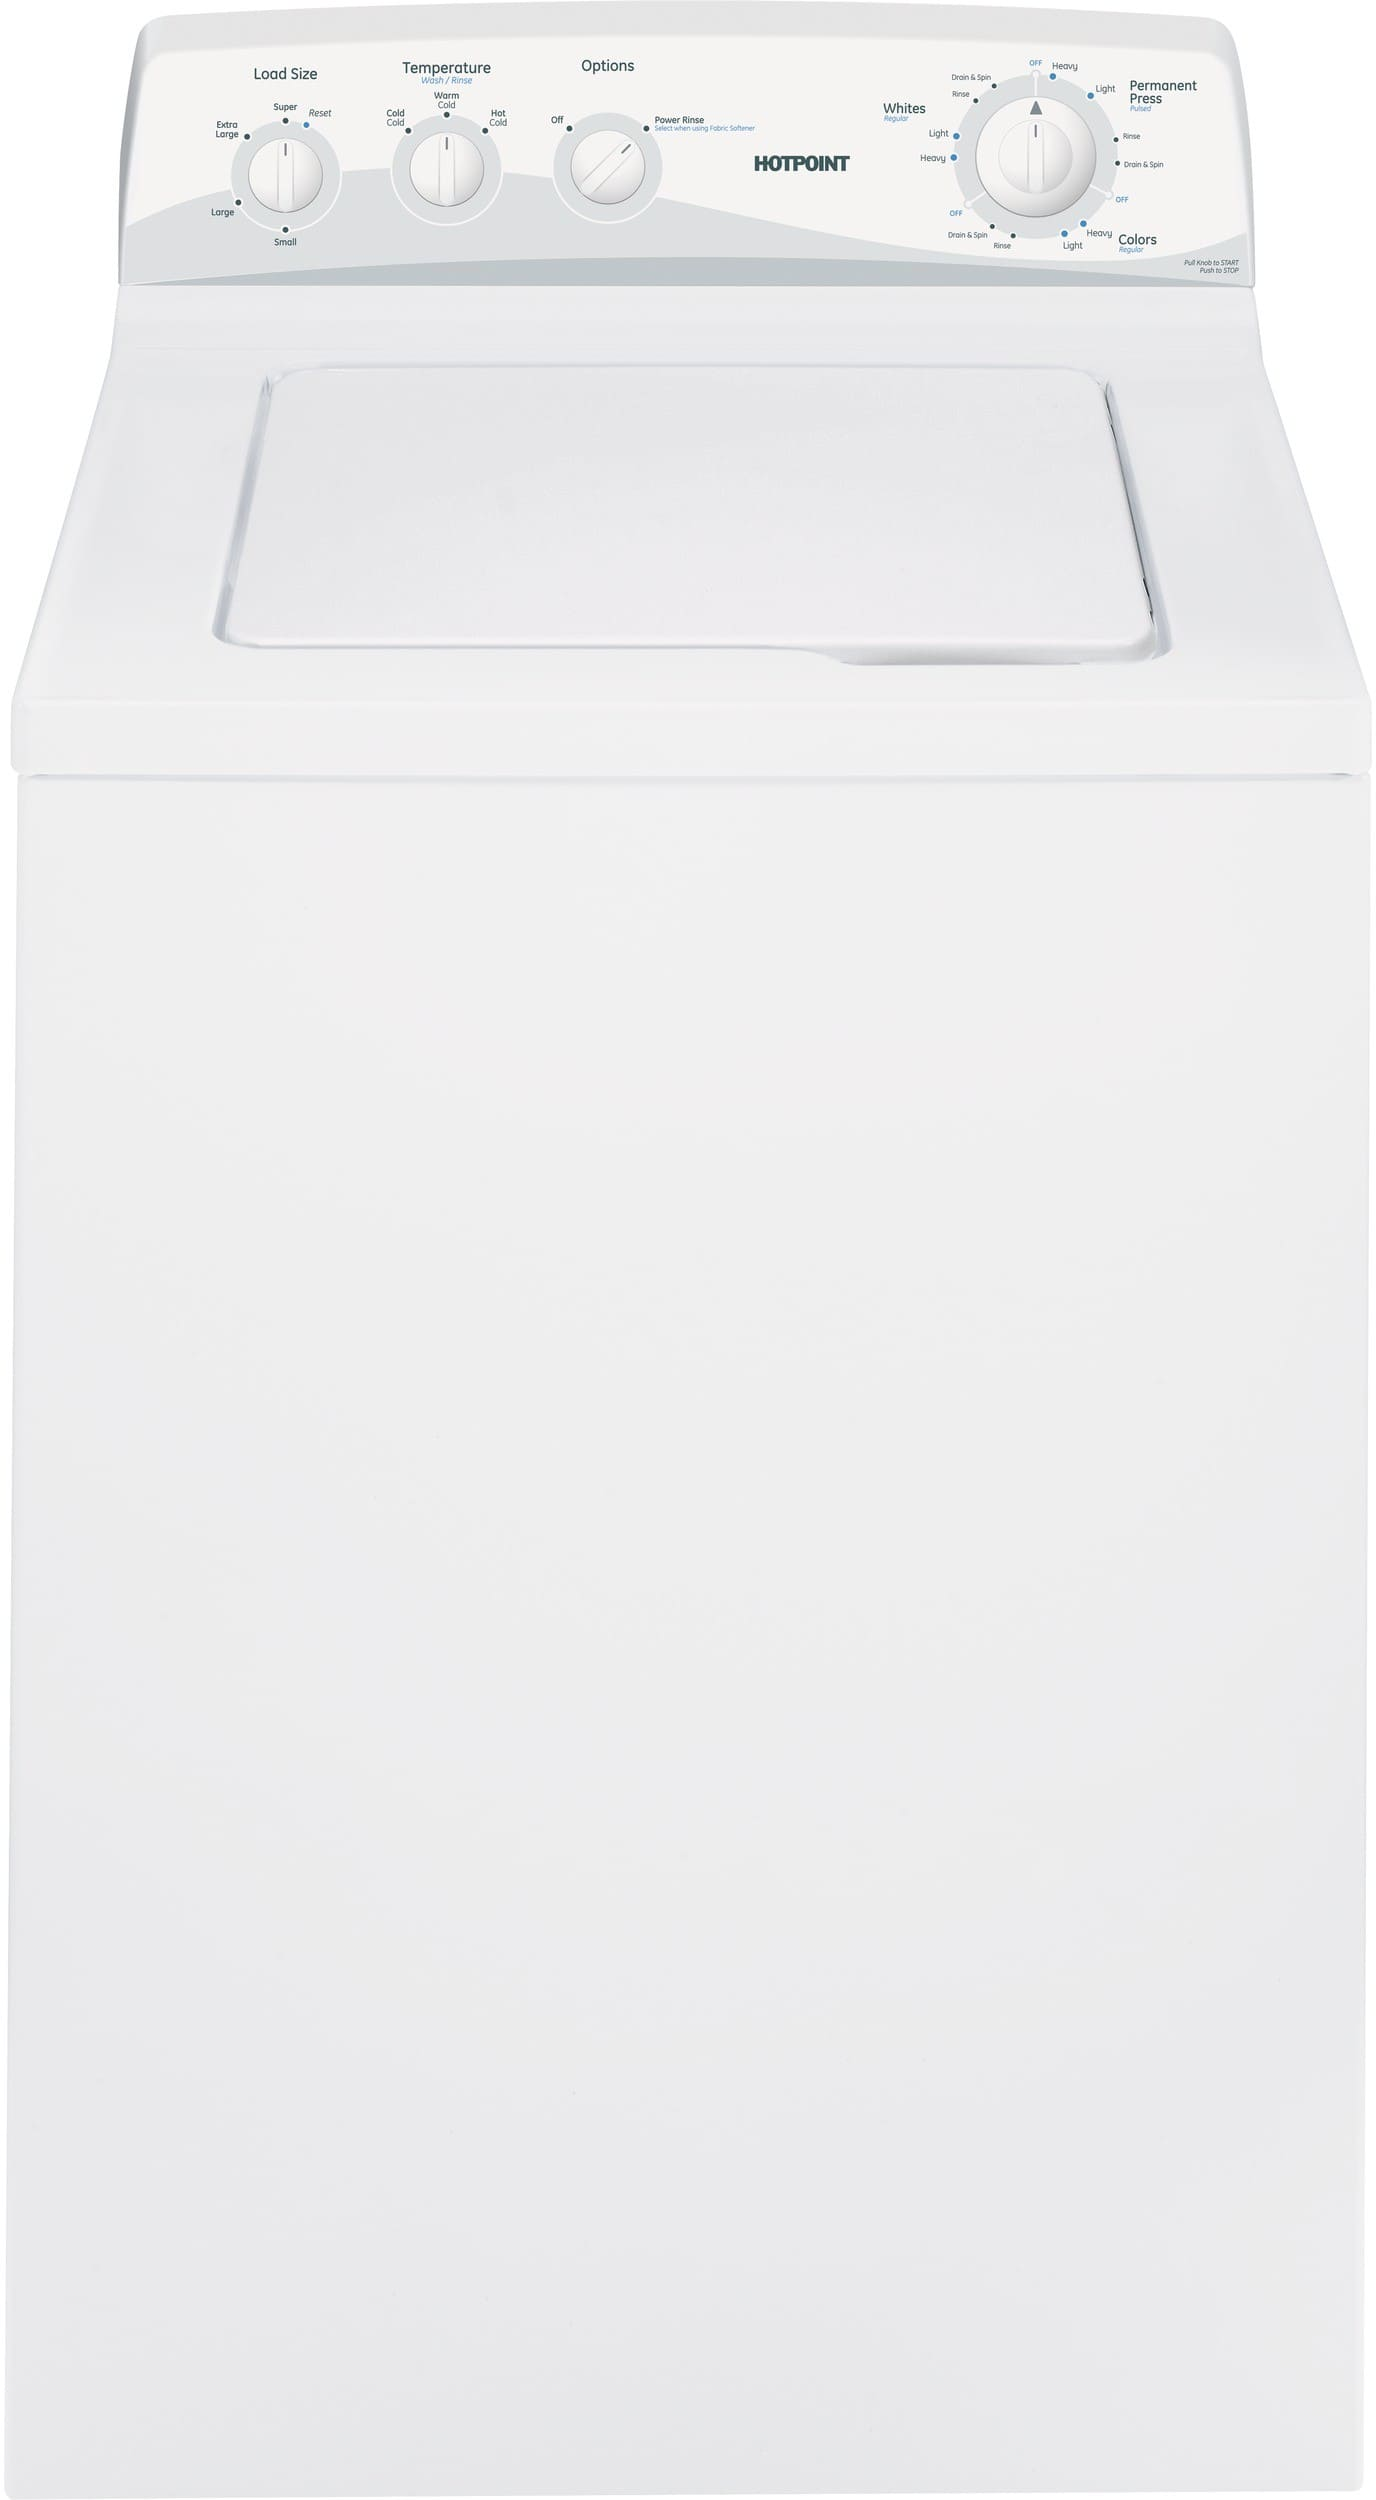 Hotpoint Top Loading Washing Machine Hotpoint Htwp1400fww 27 Inch Top Load Washer With 37 Cu Ft